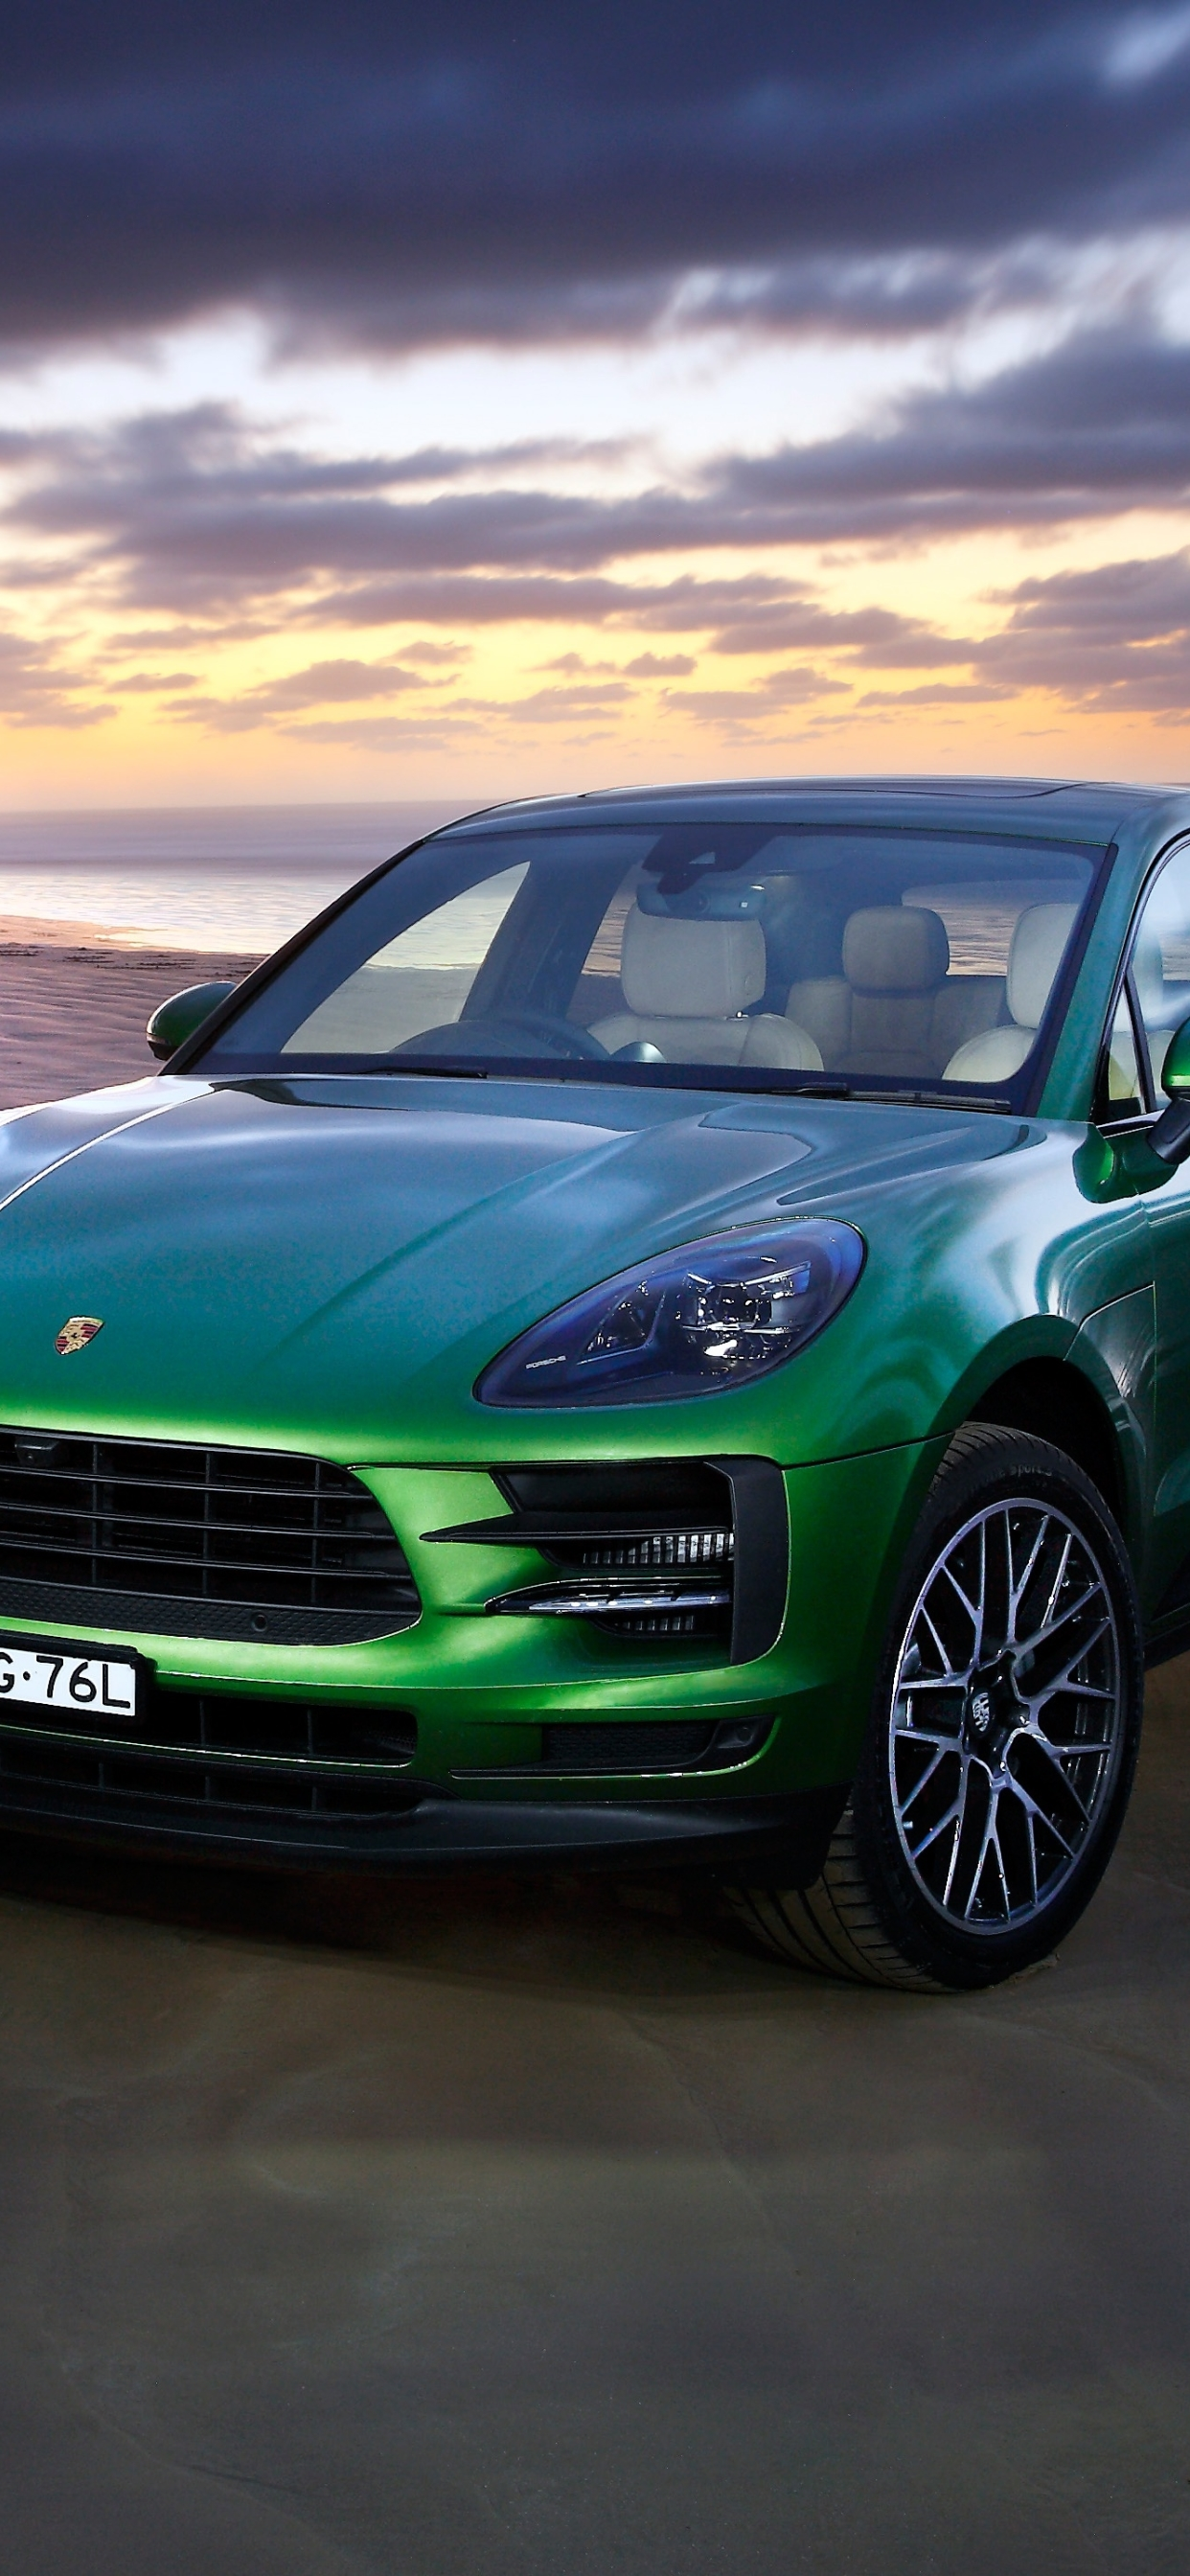 1242x2688 Porsche Macan S Iphone Xs Max Wallpaper Hd Cars